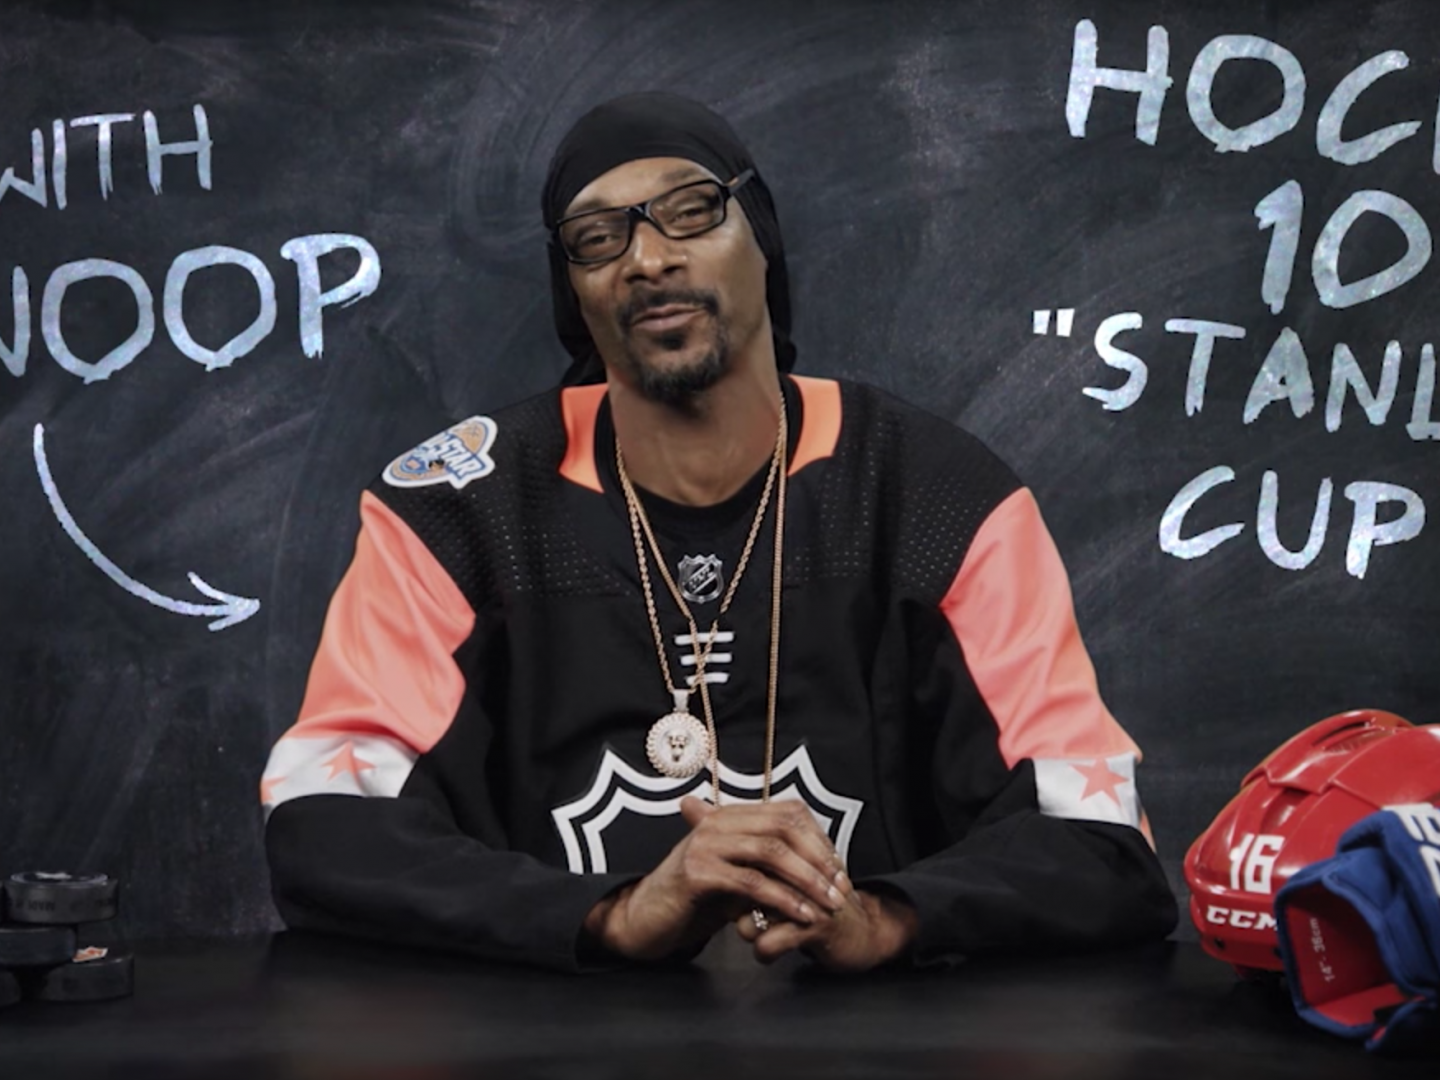 Hockey 101 with Snoop Dogg Thumbnail